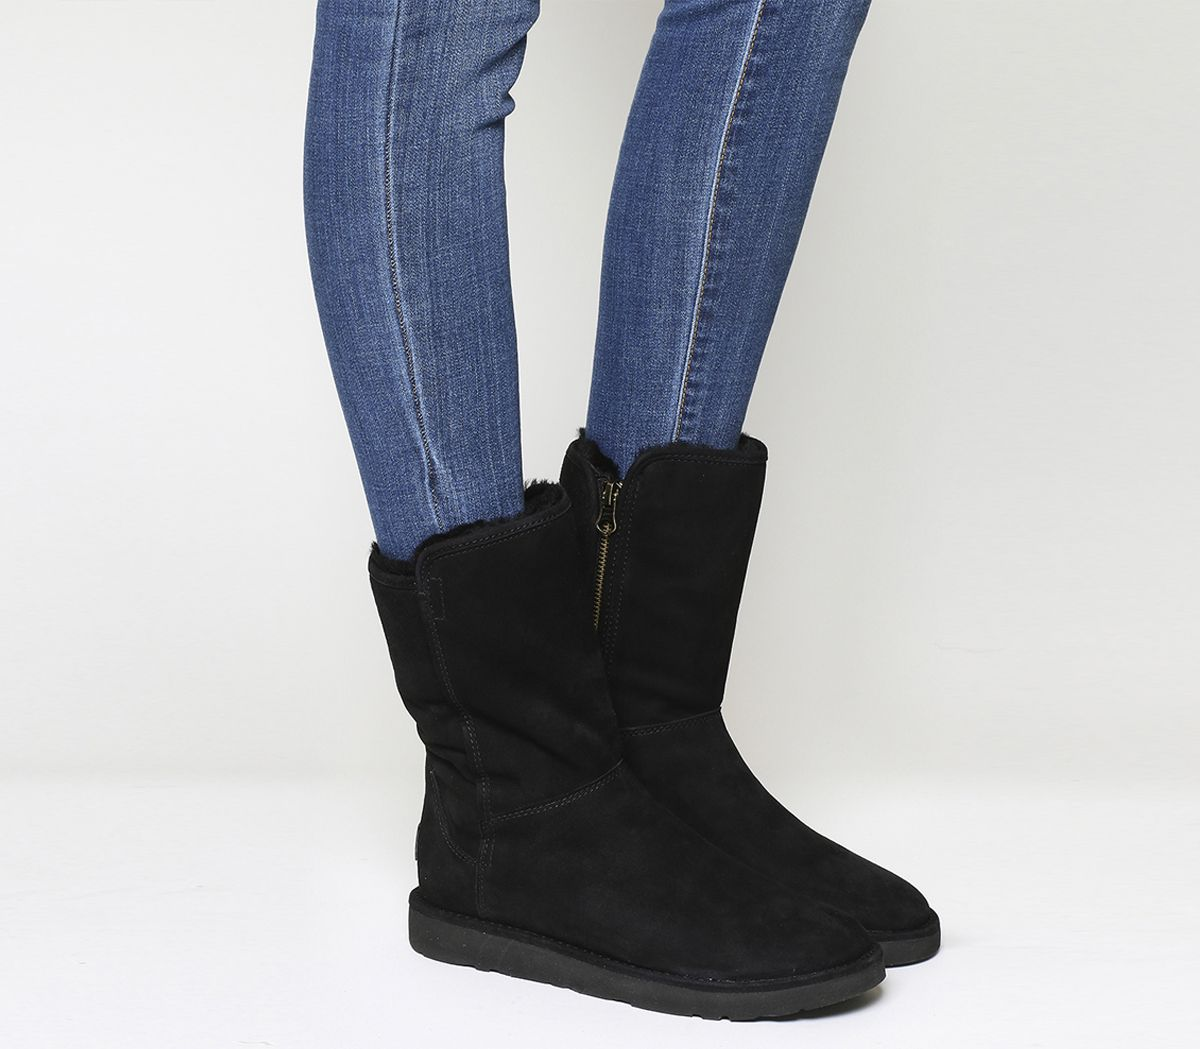 e4ae10f889d4 UGG Classic Lux Abree Short Black Suede - Ankle Boots